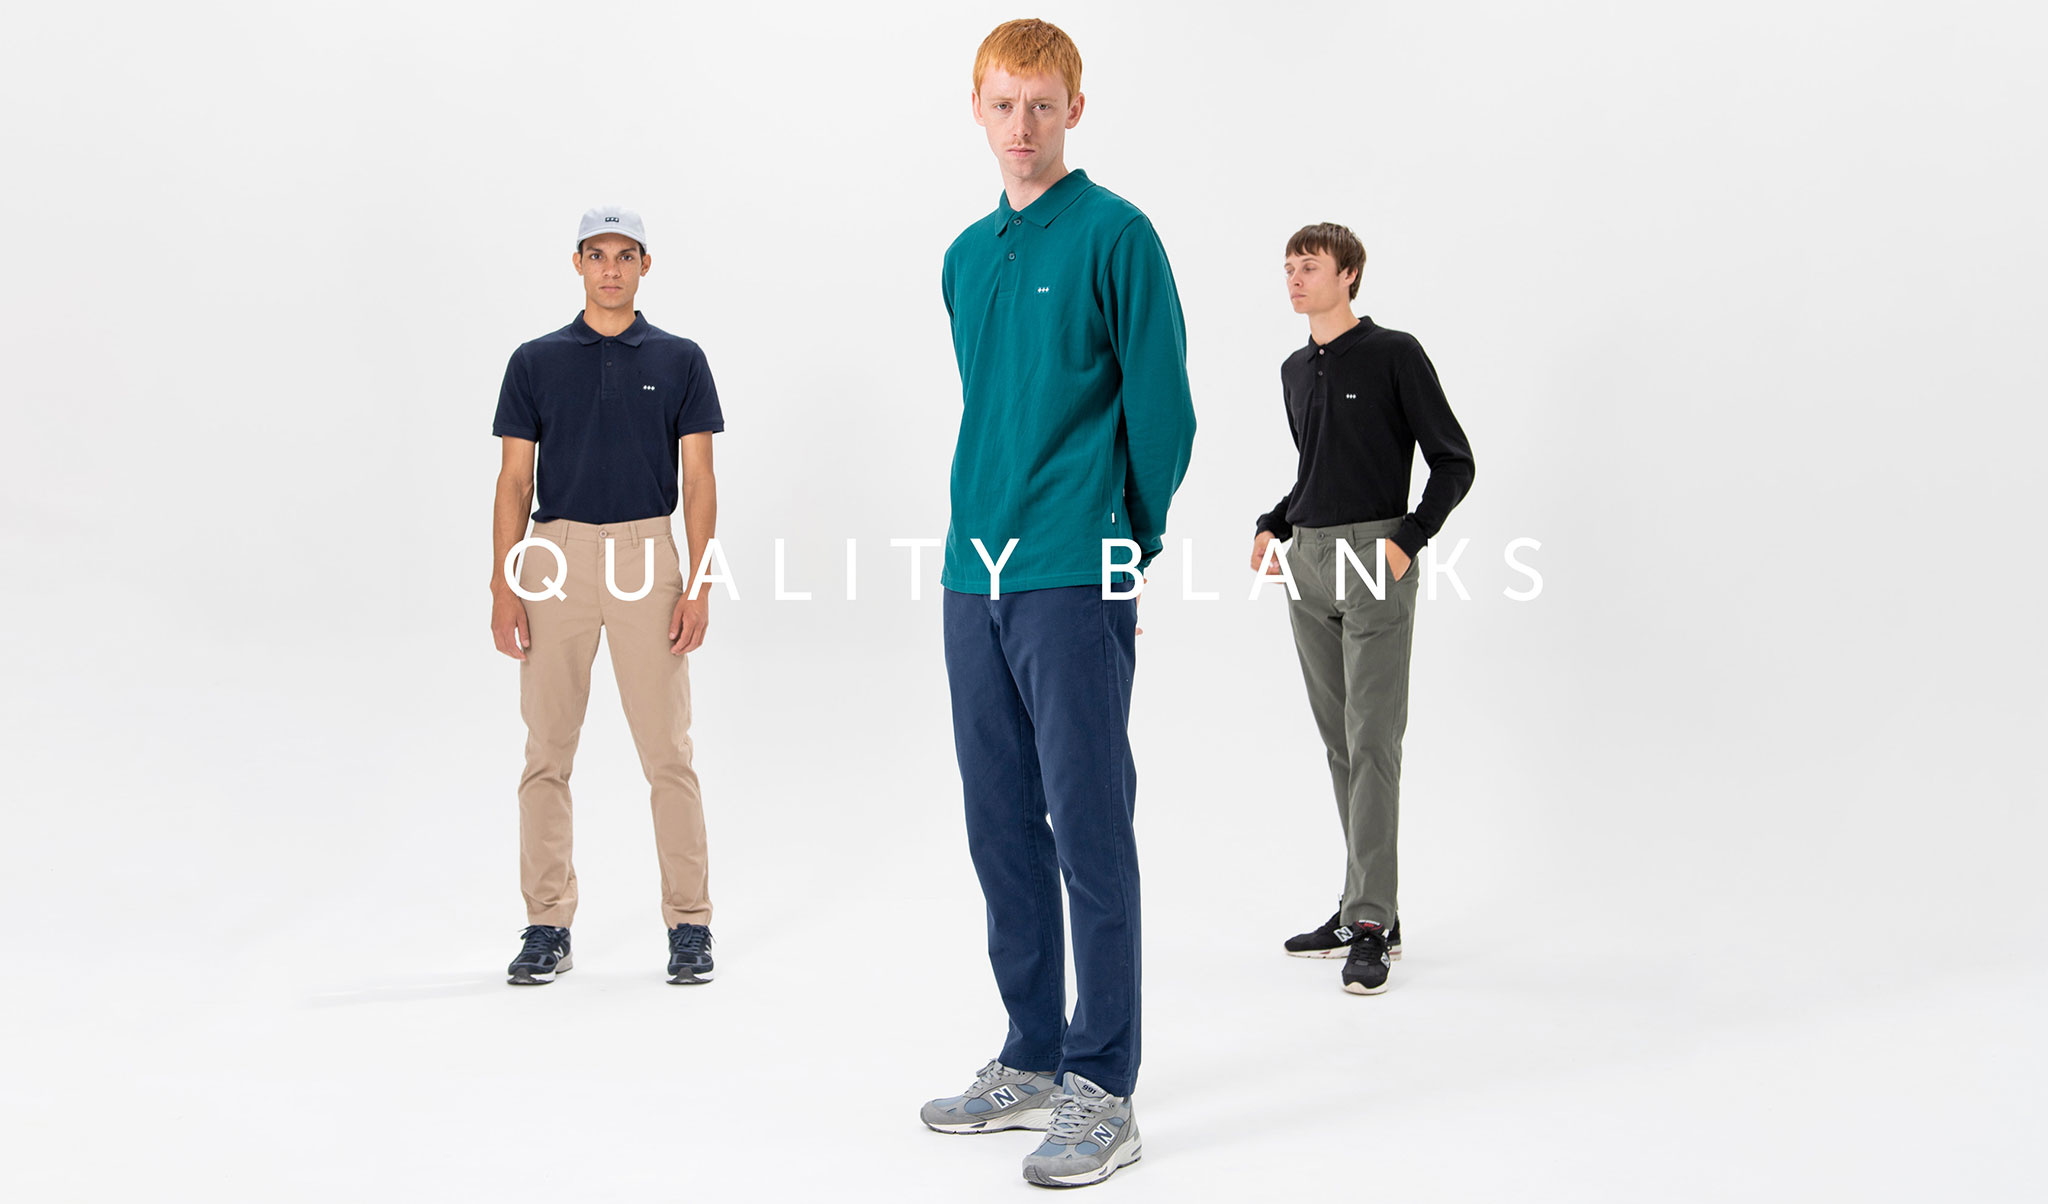 New Classic Quality Blanks Styles